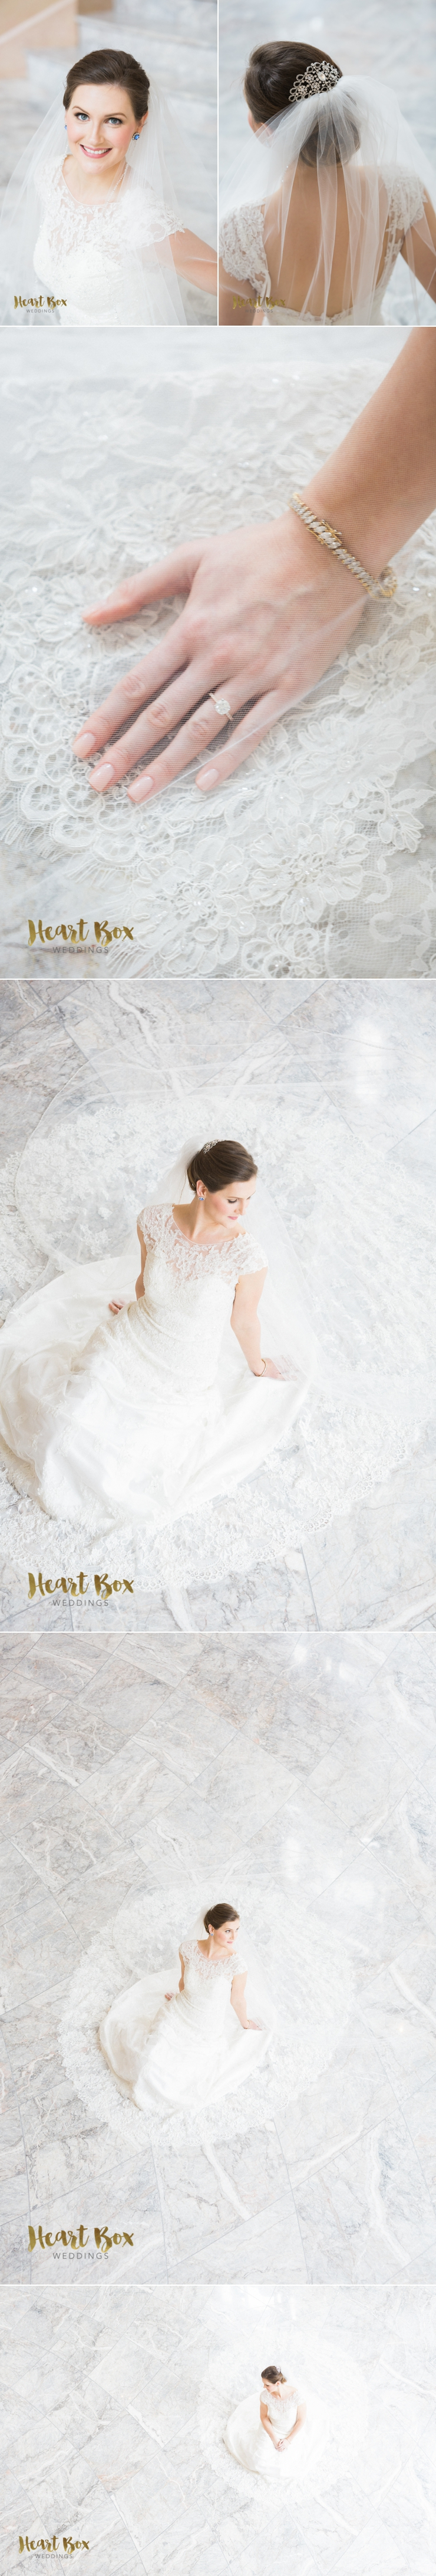 Mary Styrsky Bridal Collages 4.jpg